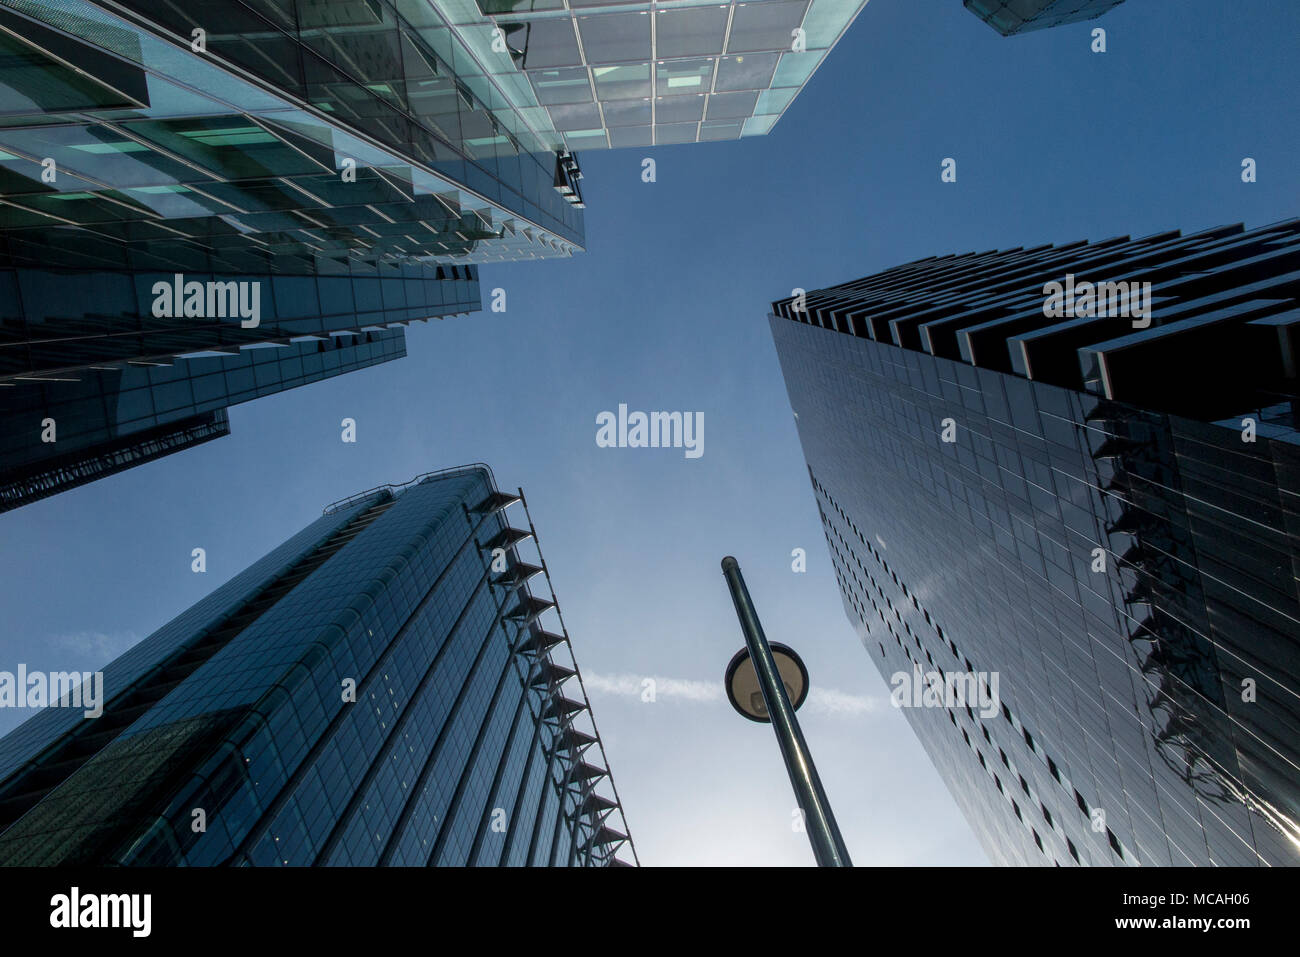 A dramatic view of the Heron Building and surrounding - Stock Image